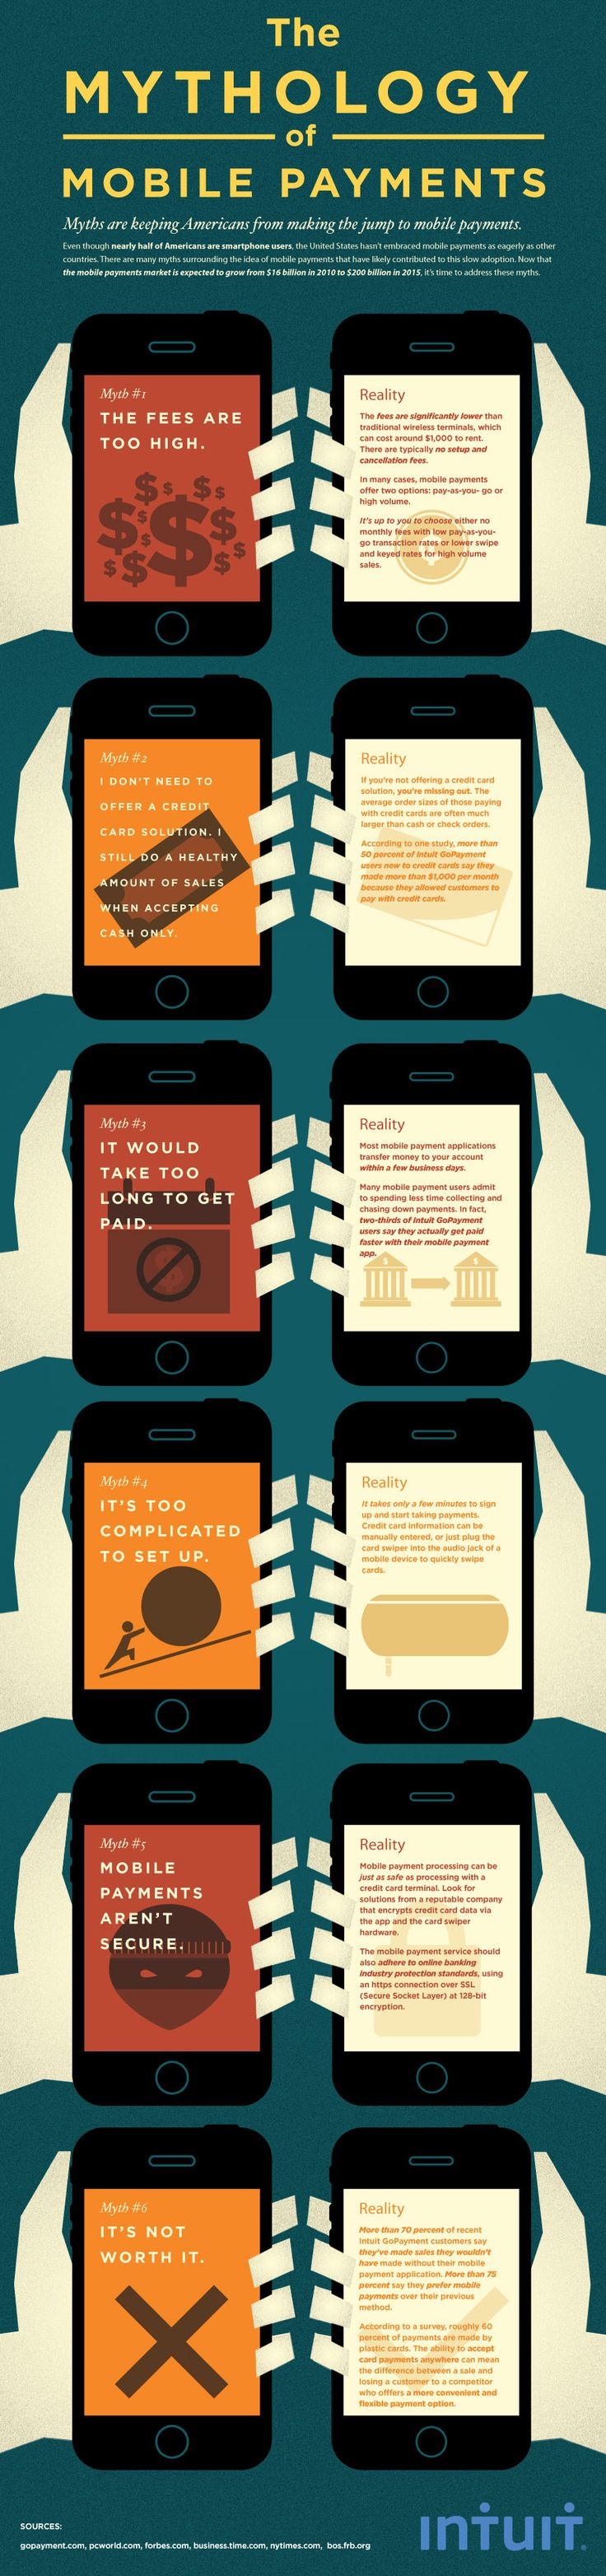 The Mythology Of Mobile Payments: A brief infographic to dispel some widely spread prejudices.